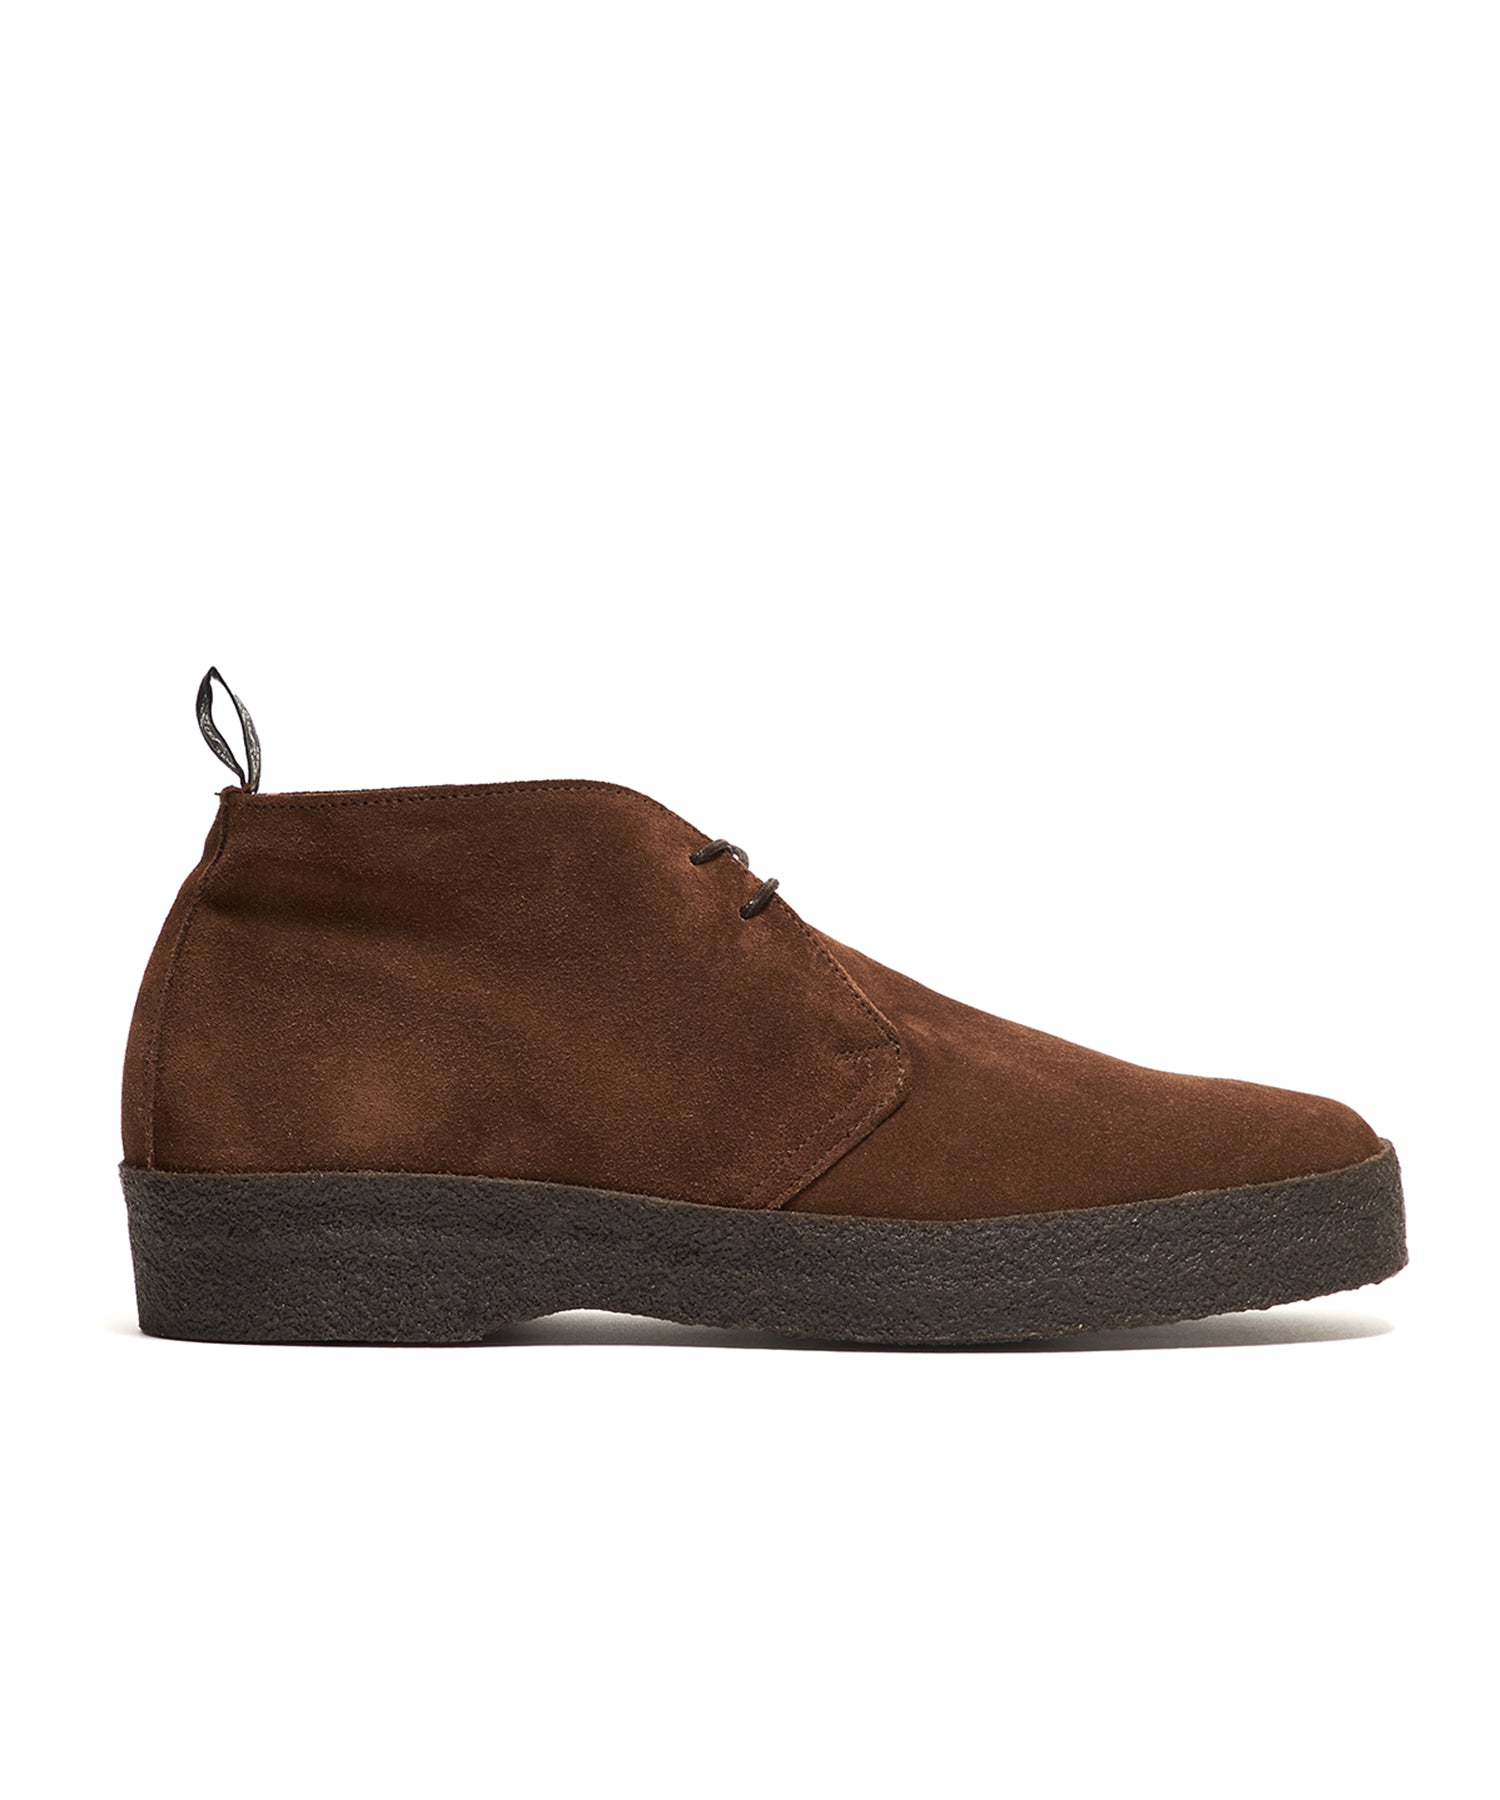 Sanders Chukka Boot in Snuff Suede